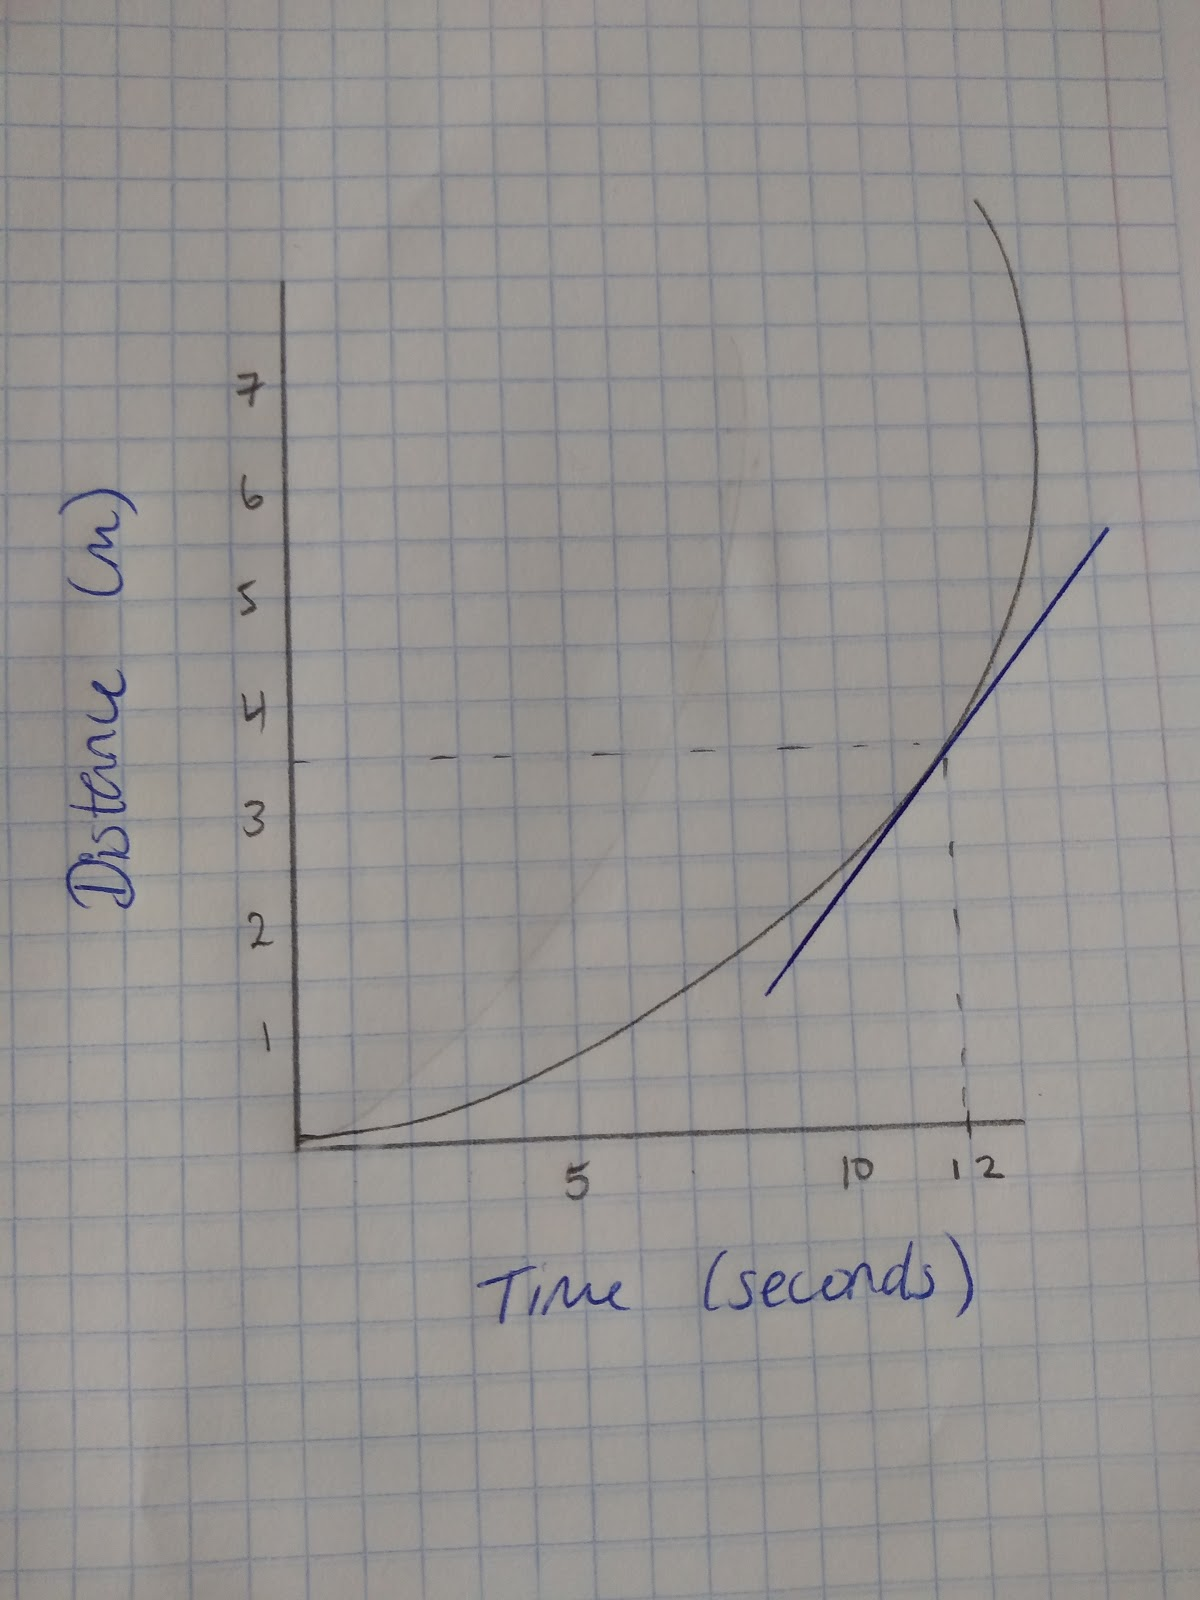 Calculating and Estimating Gradients of Graphs, figure 2